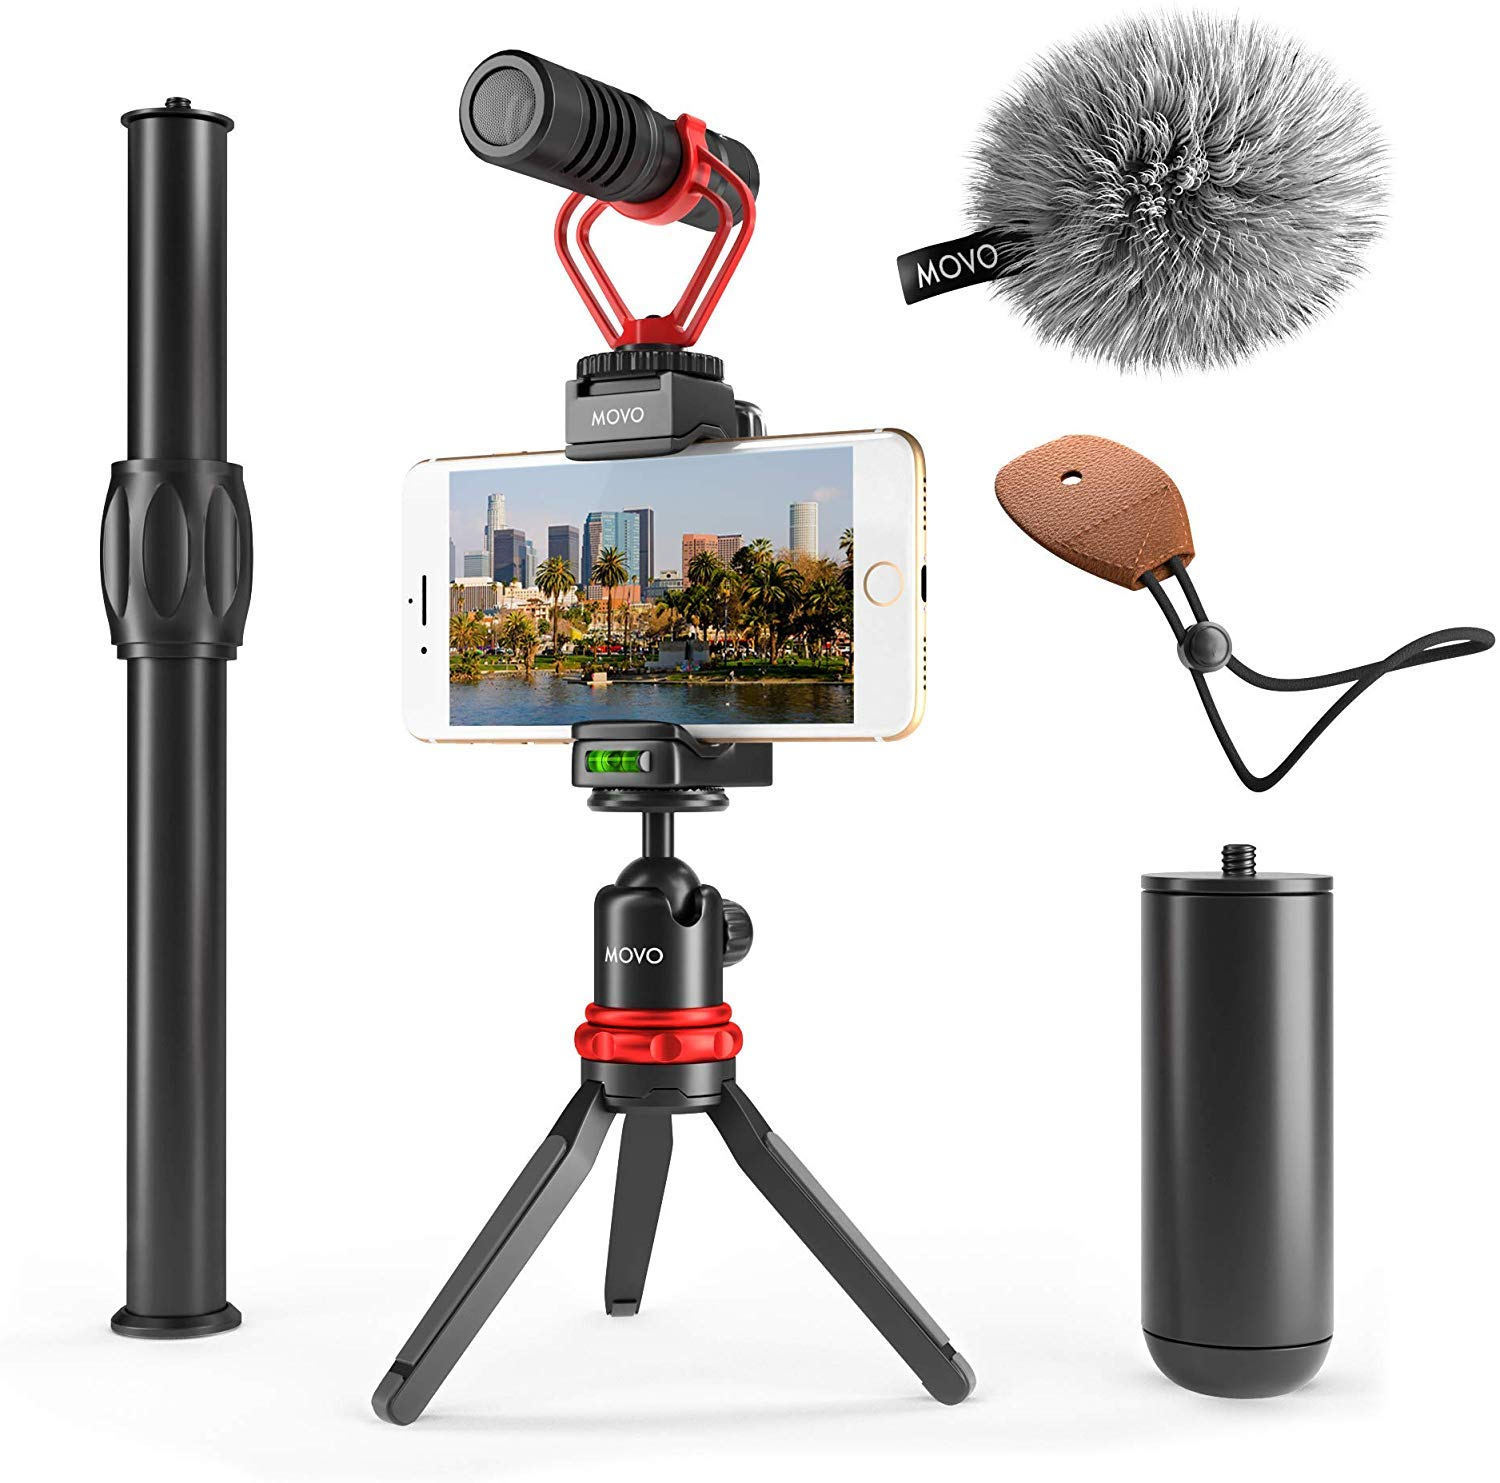 Movo Smartphone Video Rig with Mini Tripod, Grip Handle and Shotgun Microphone for iPhone 5, 5C, 5S, 6, 6S, 7, 8, X, XR, XS Max, 11, 11 Pro Samsung Galaxy - Perfect iPhone Video Kit, Vlog, YouTube Mic by Movo